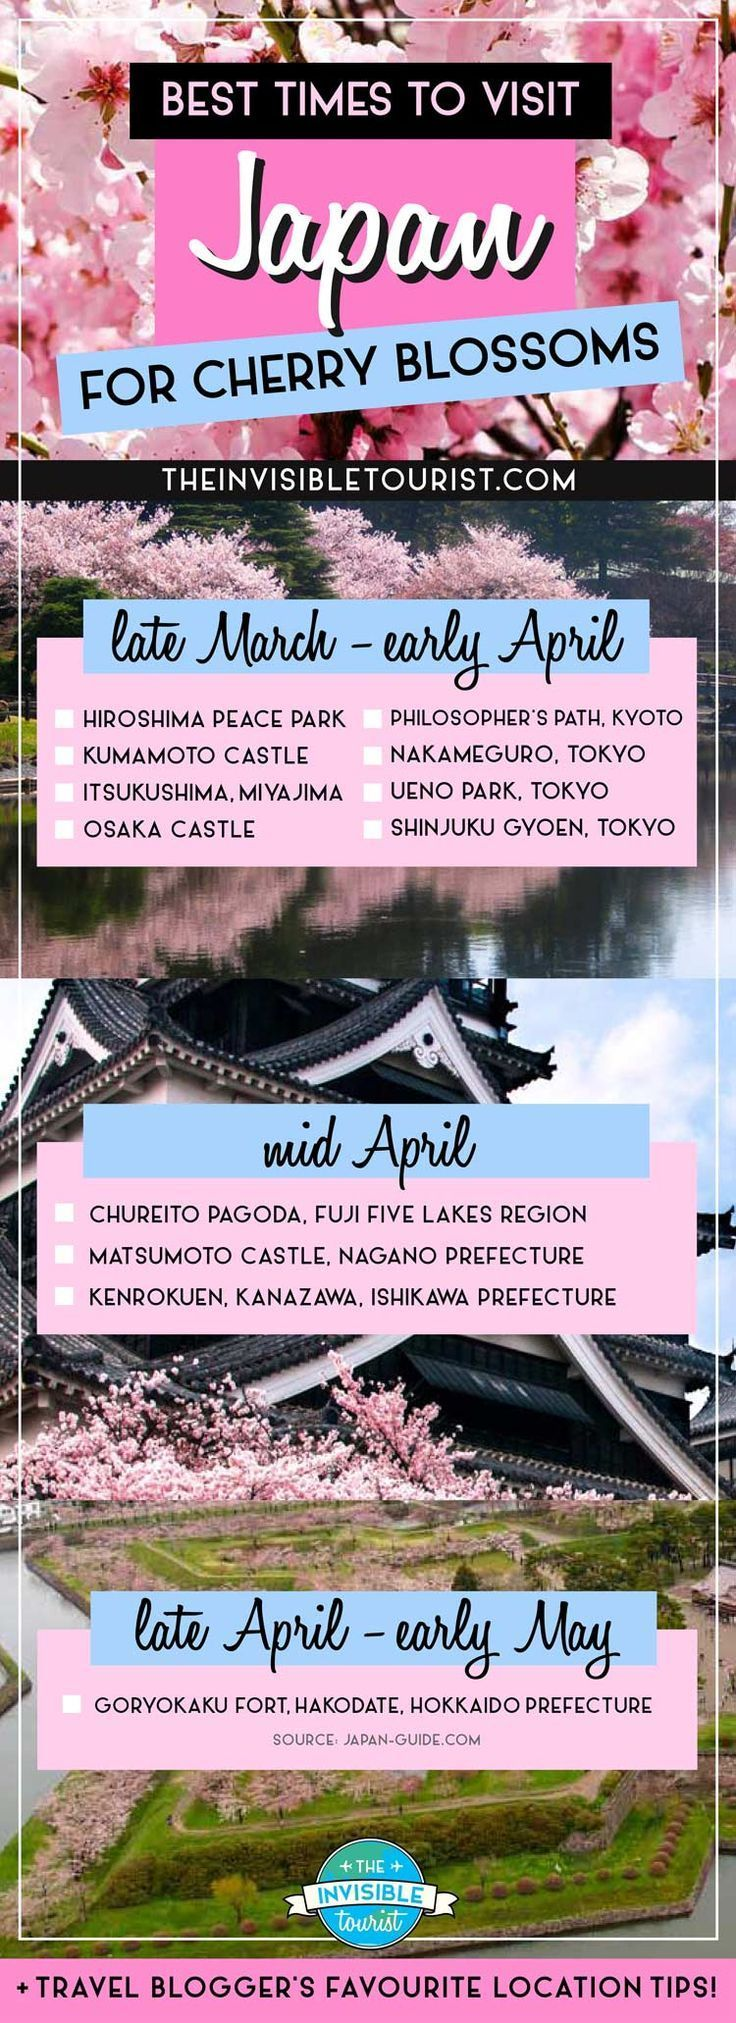 The Best Time to Visit Japan for Cherry Blossoms   The Invisible Tourist #japan #cherryblossoms #japantrip #japanitinerary